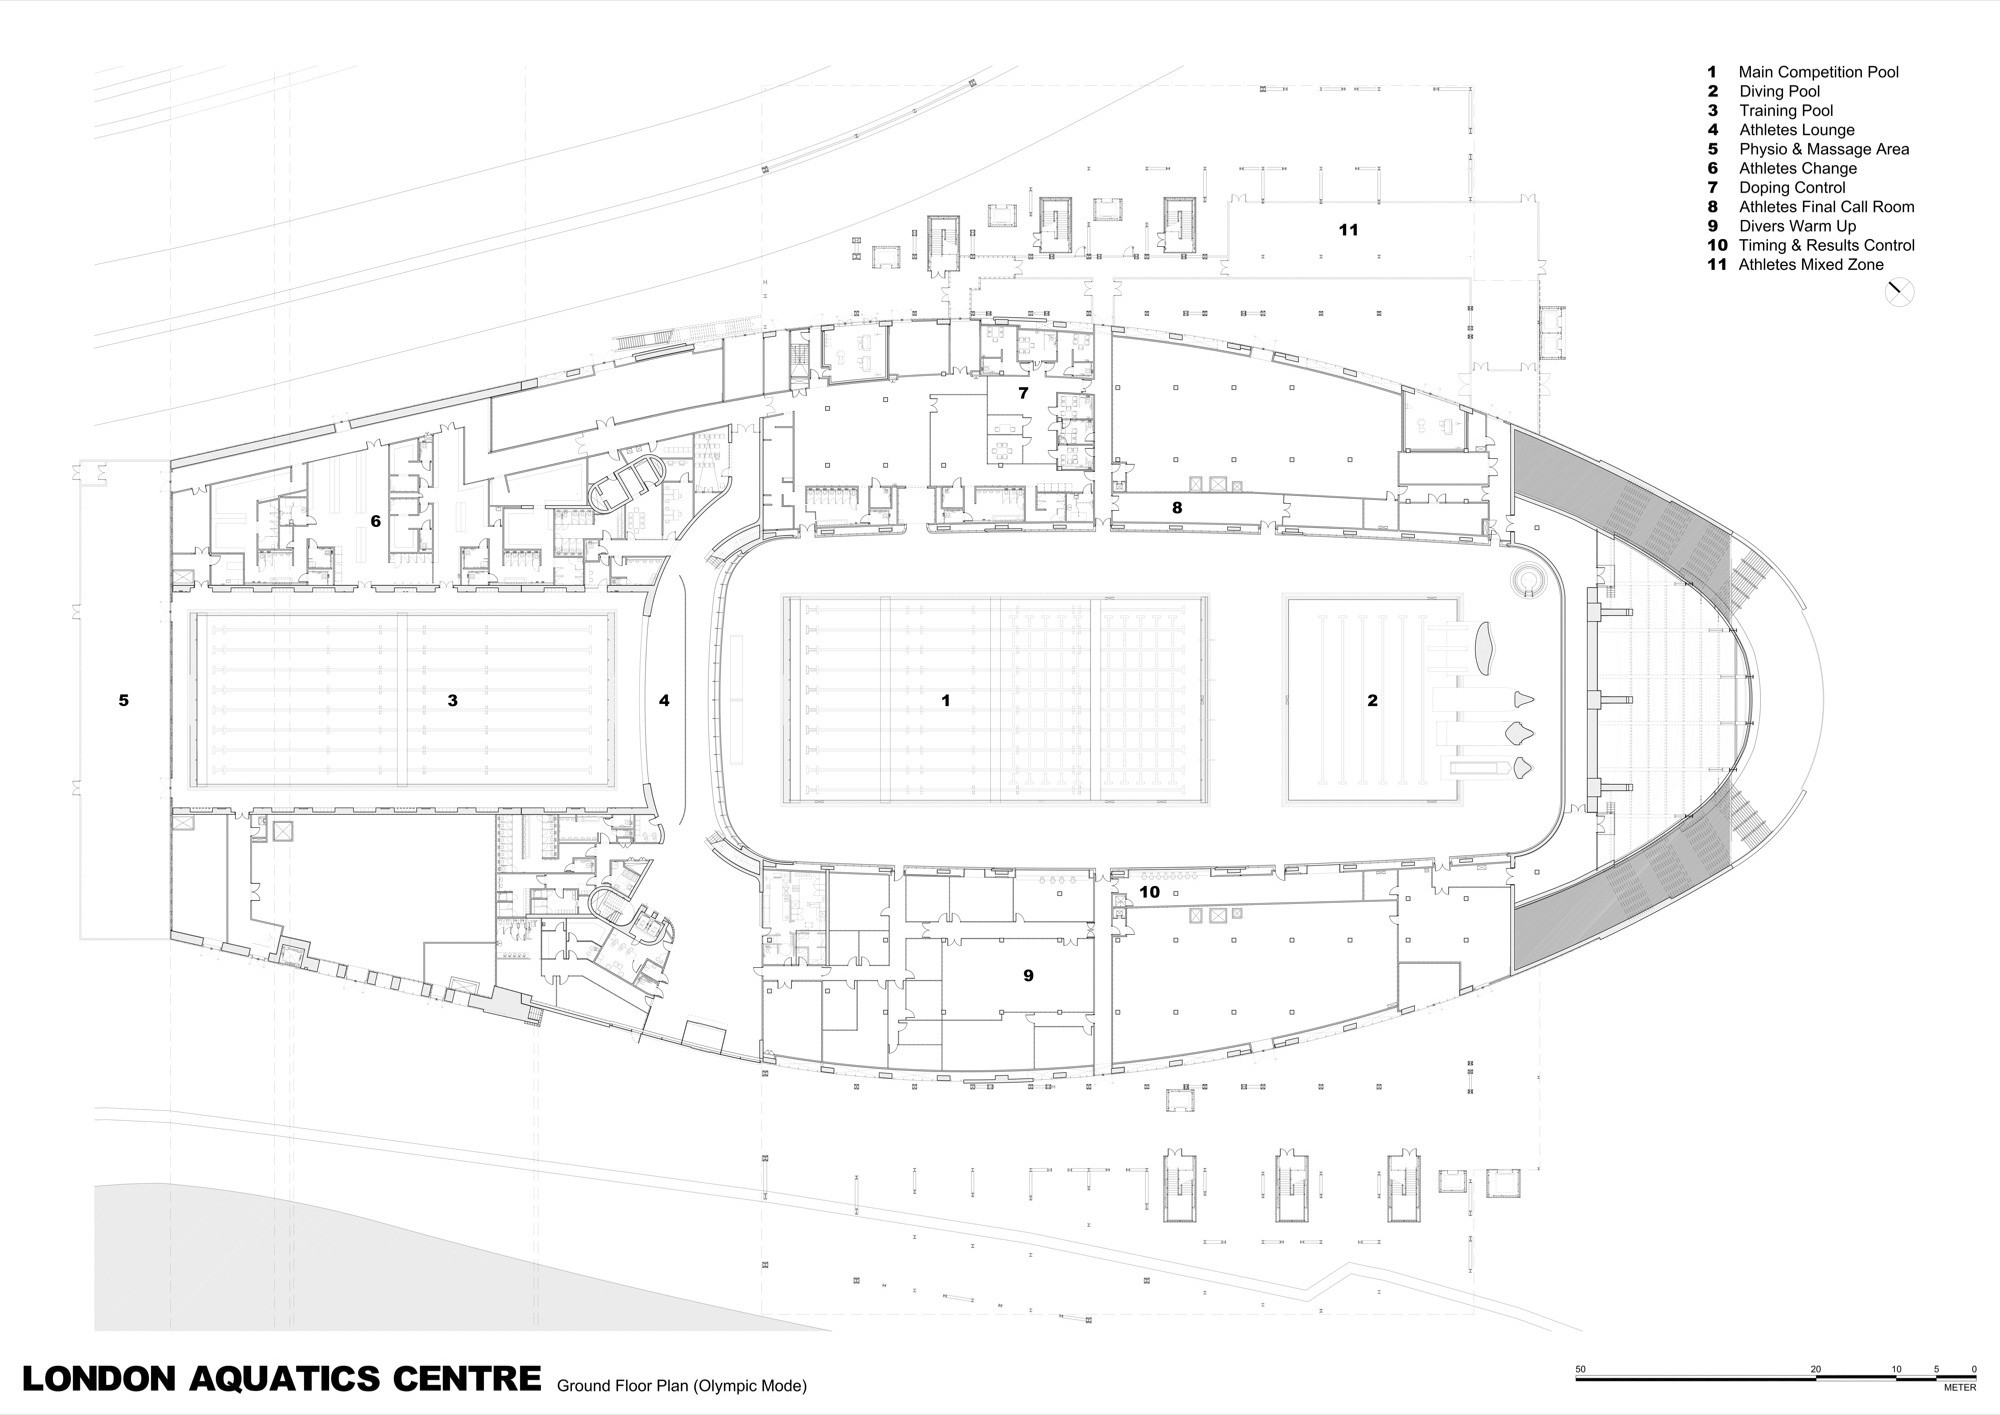 ground floor plan olympic mode - Olympic Swimming Pool Diagram